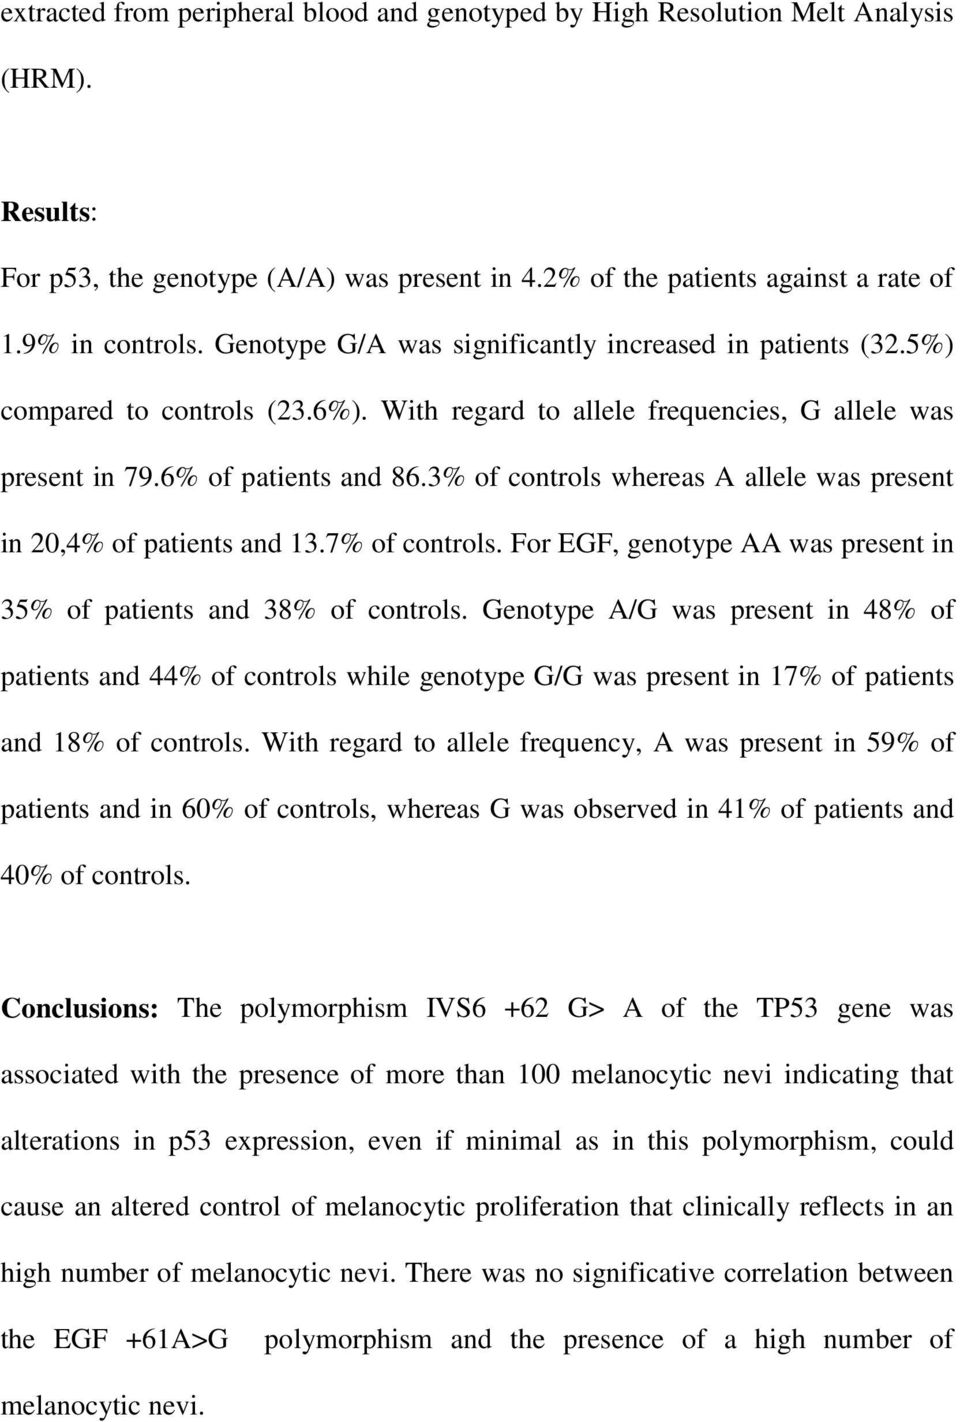 3% of controls whereas A allele was present in 20,4% of patients and 13.7% of controls. For EGF, genotype AA was present in 35% of patients and 38% of controls.